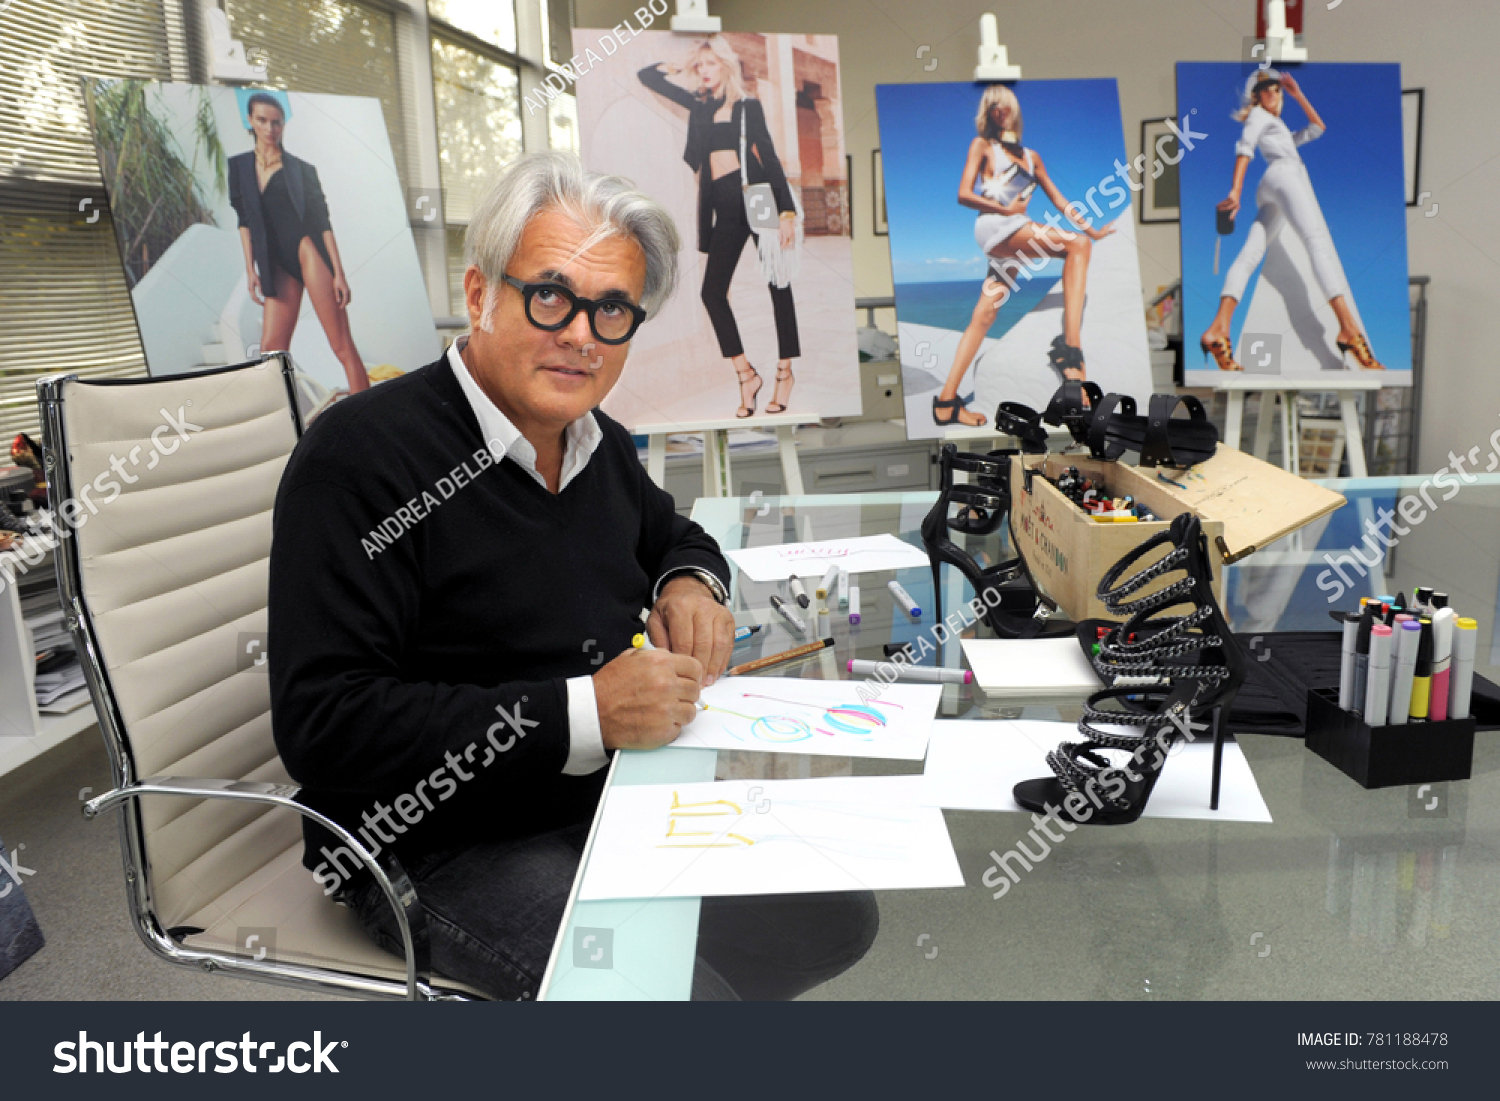 Italy Milan December 252017 Giuseppe Zanotti Stock Photo Edit Now 781188478